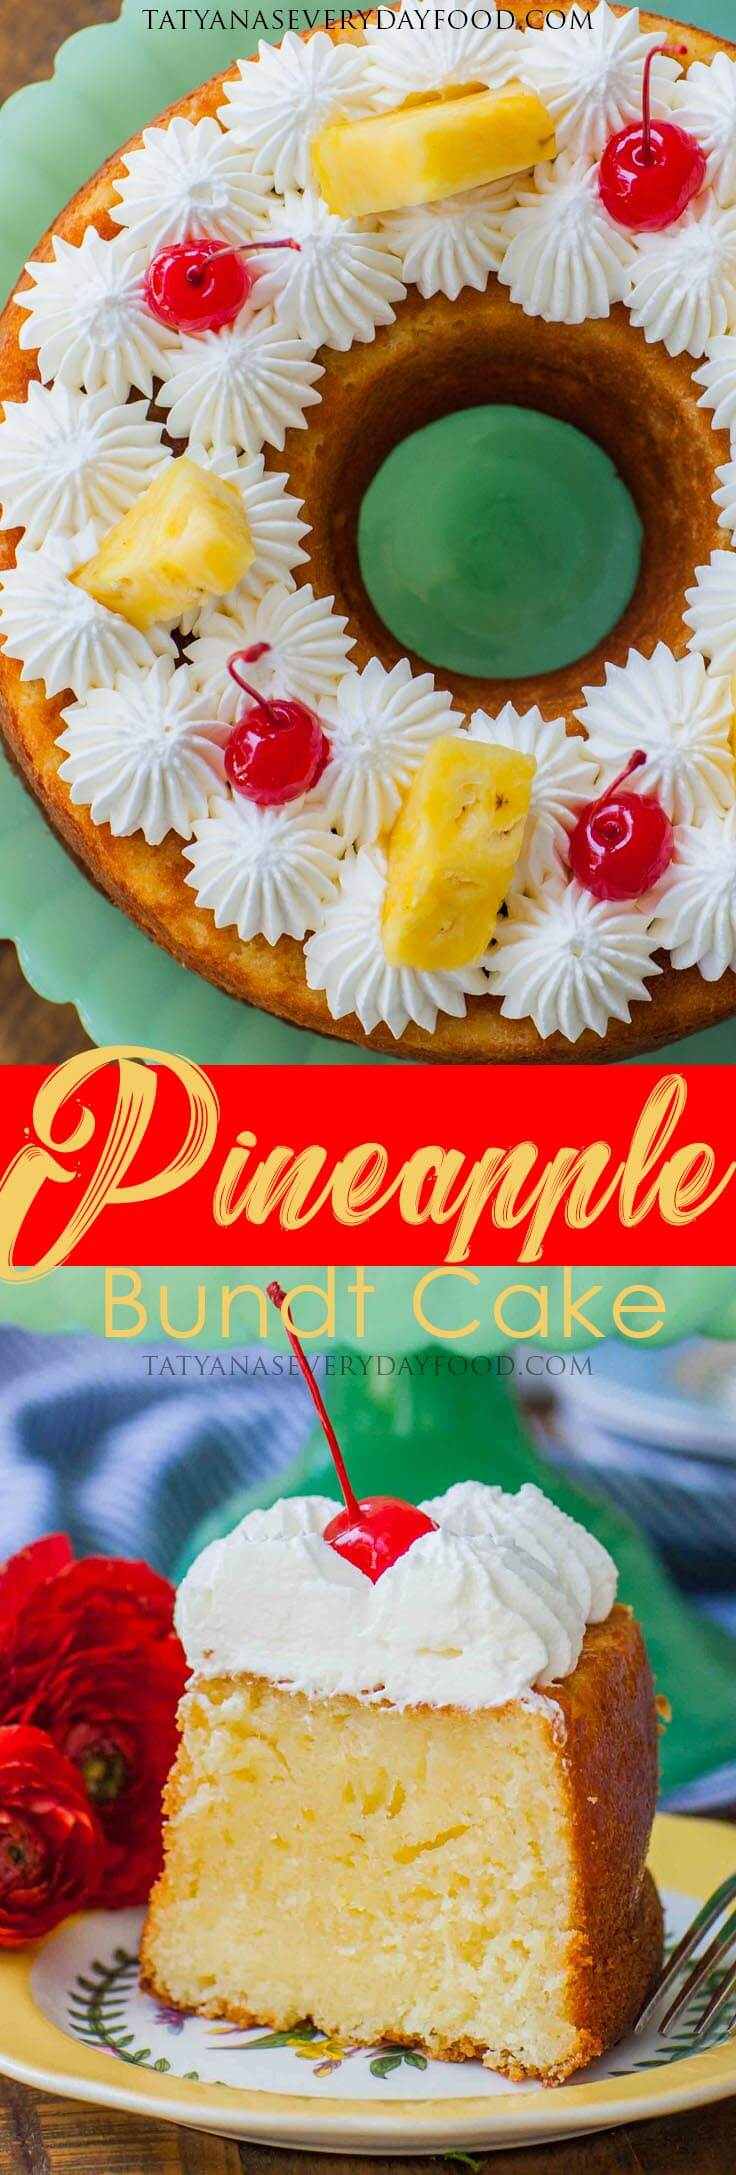 Easy Pineapple Bundt Cake Recipe with video